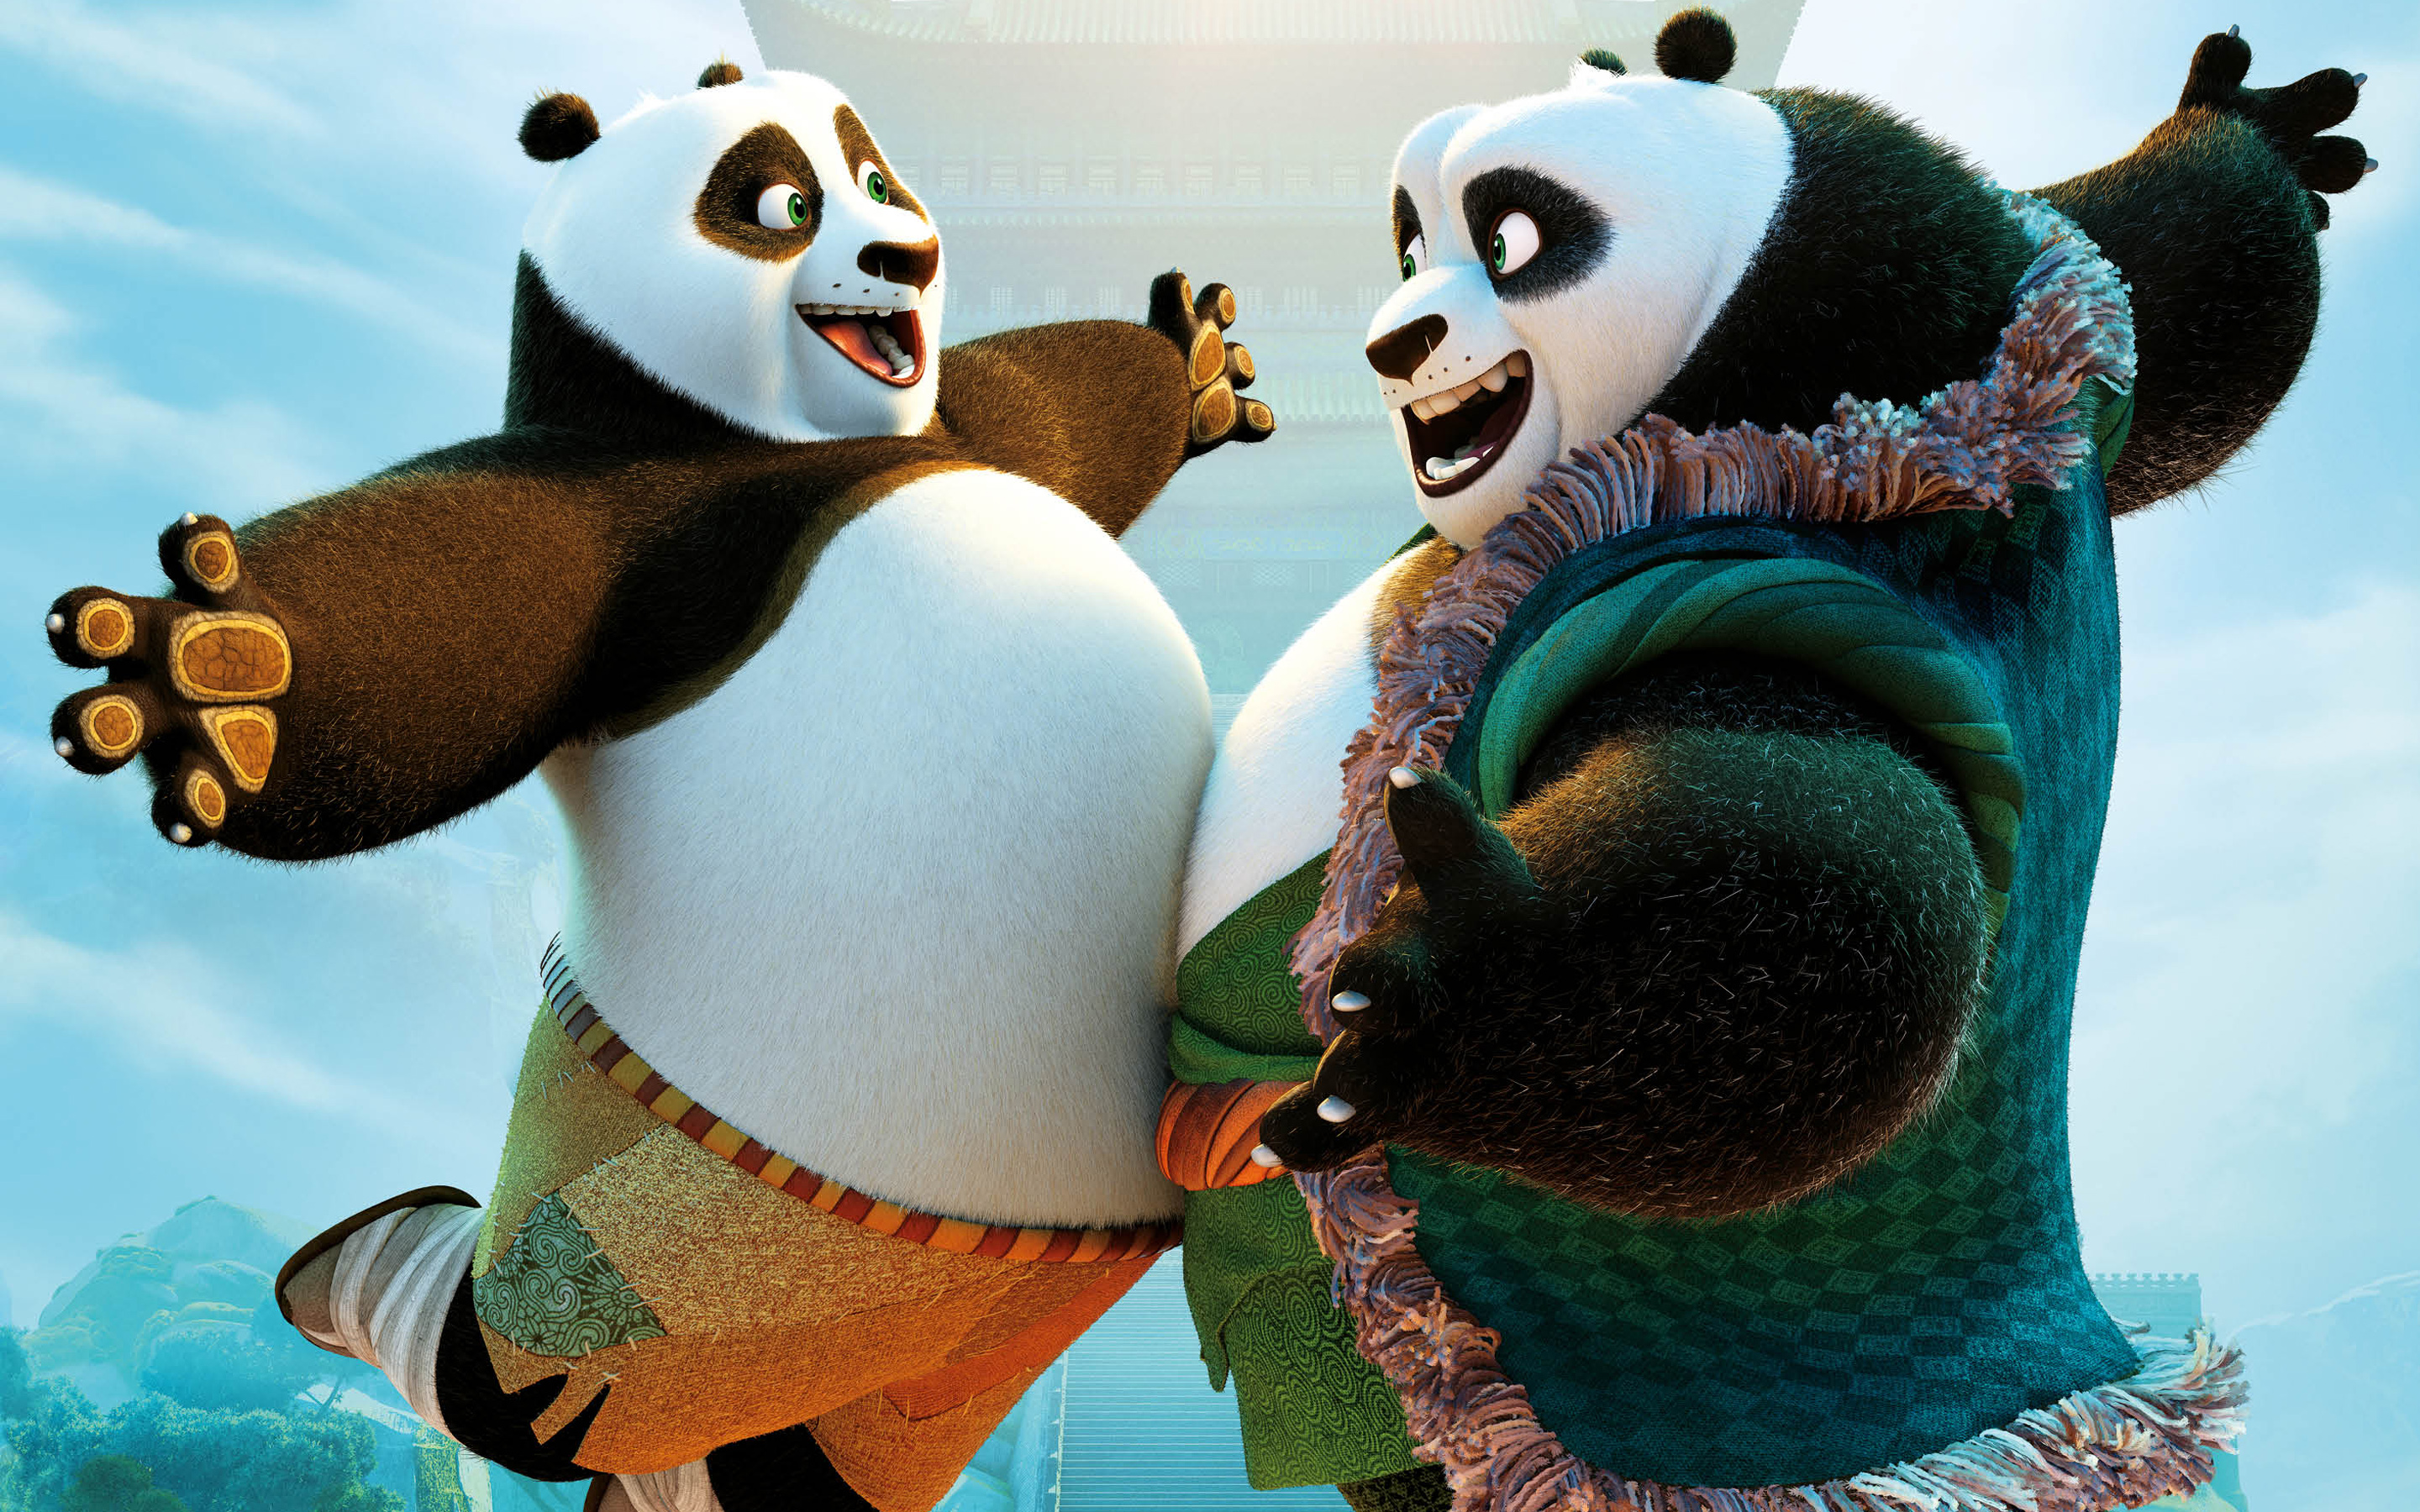 kung fu panda 3 full hd wallpaper and background image | 2880x1800